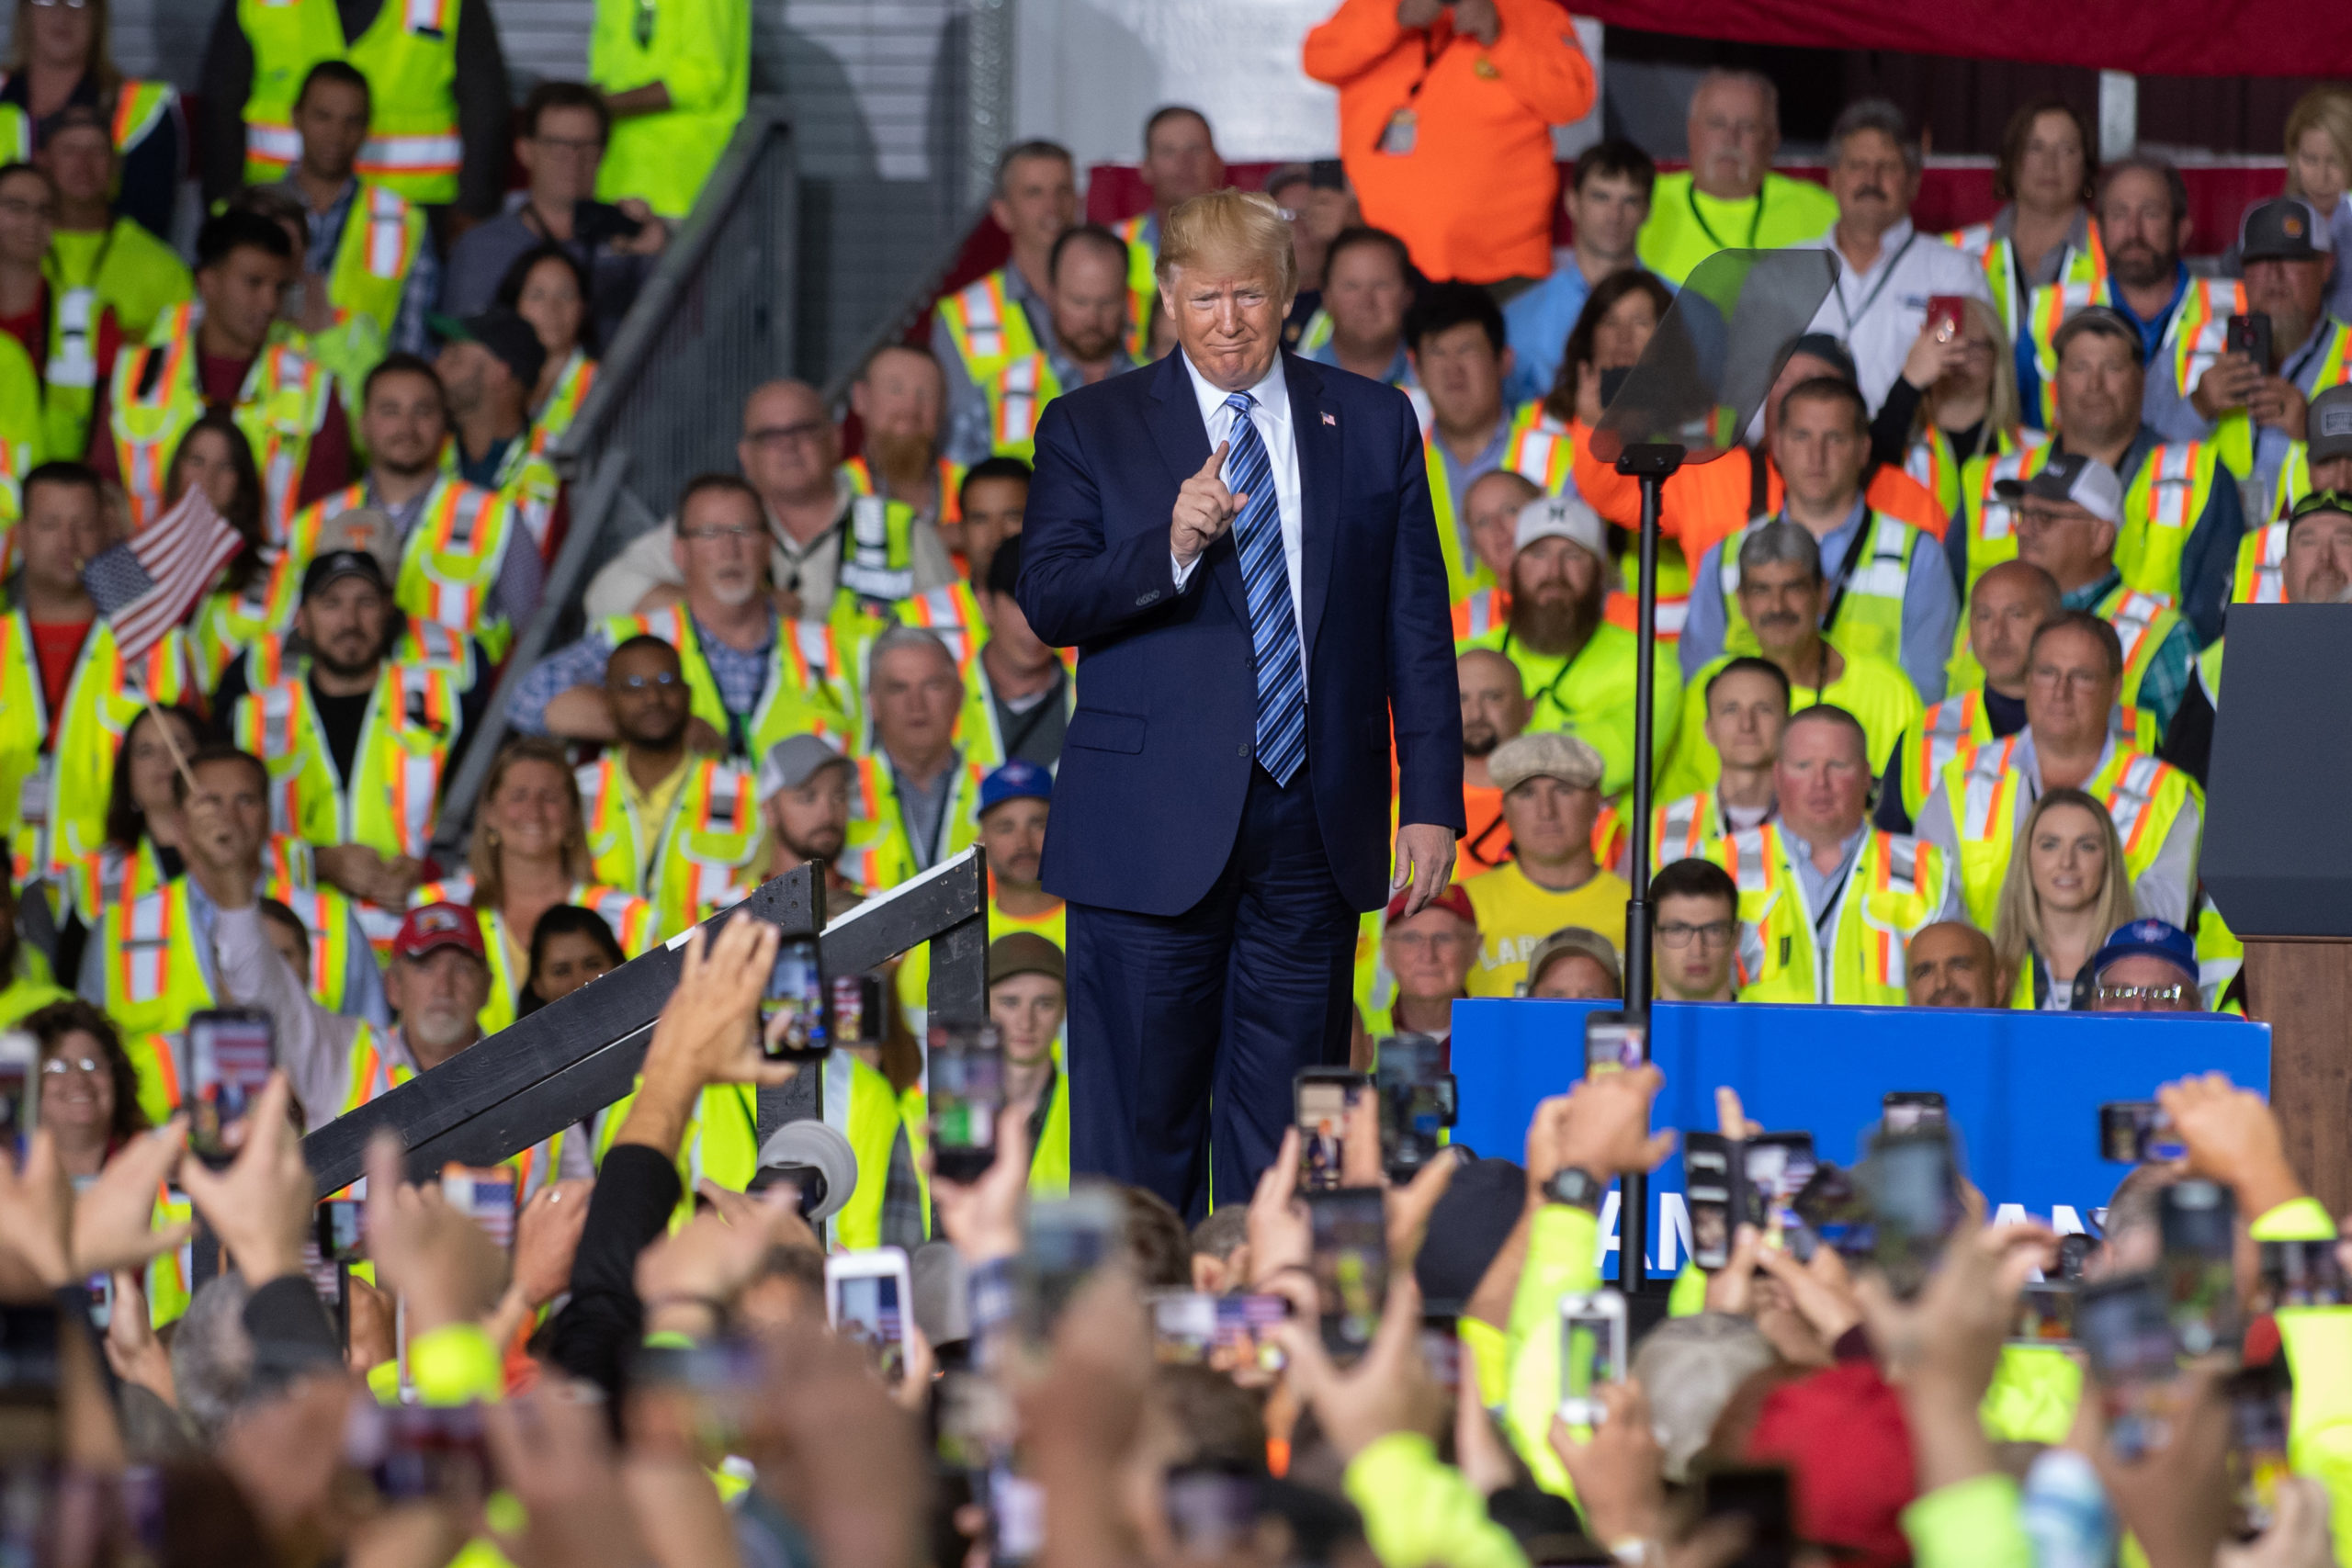 President Donald Trump speaks to 5,000 workers at the Shell Chemicals Petrochemical Complex on Aug. 13, 2019 in Monaca, Pennsylvania. (Jeff Swensen/Getty Images)